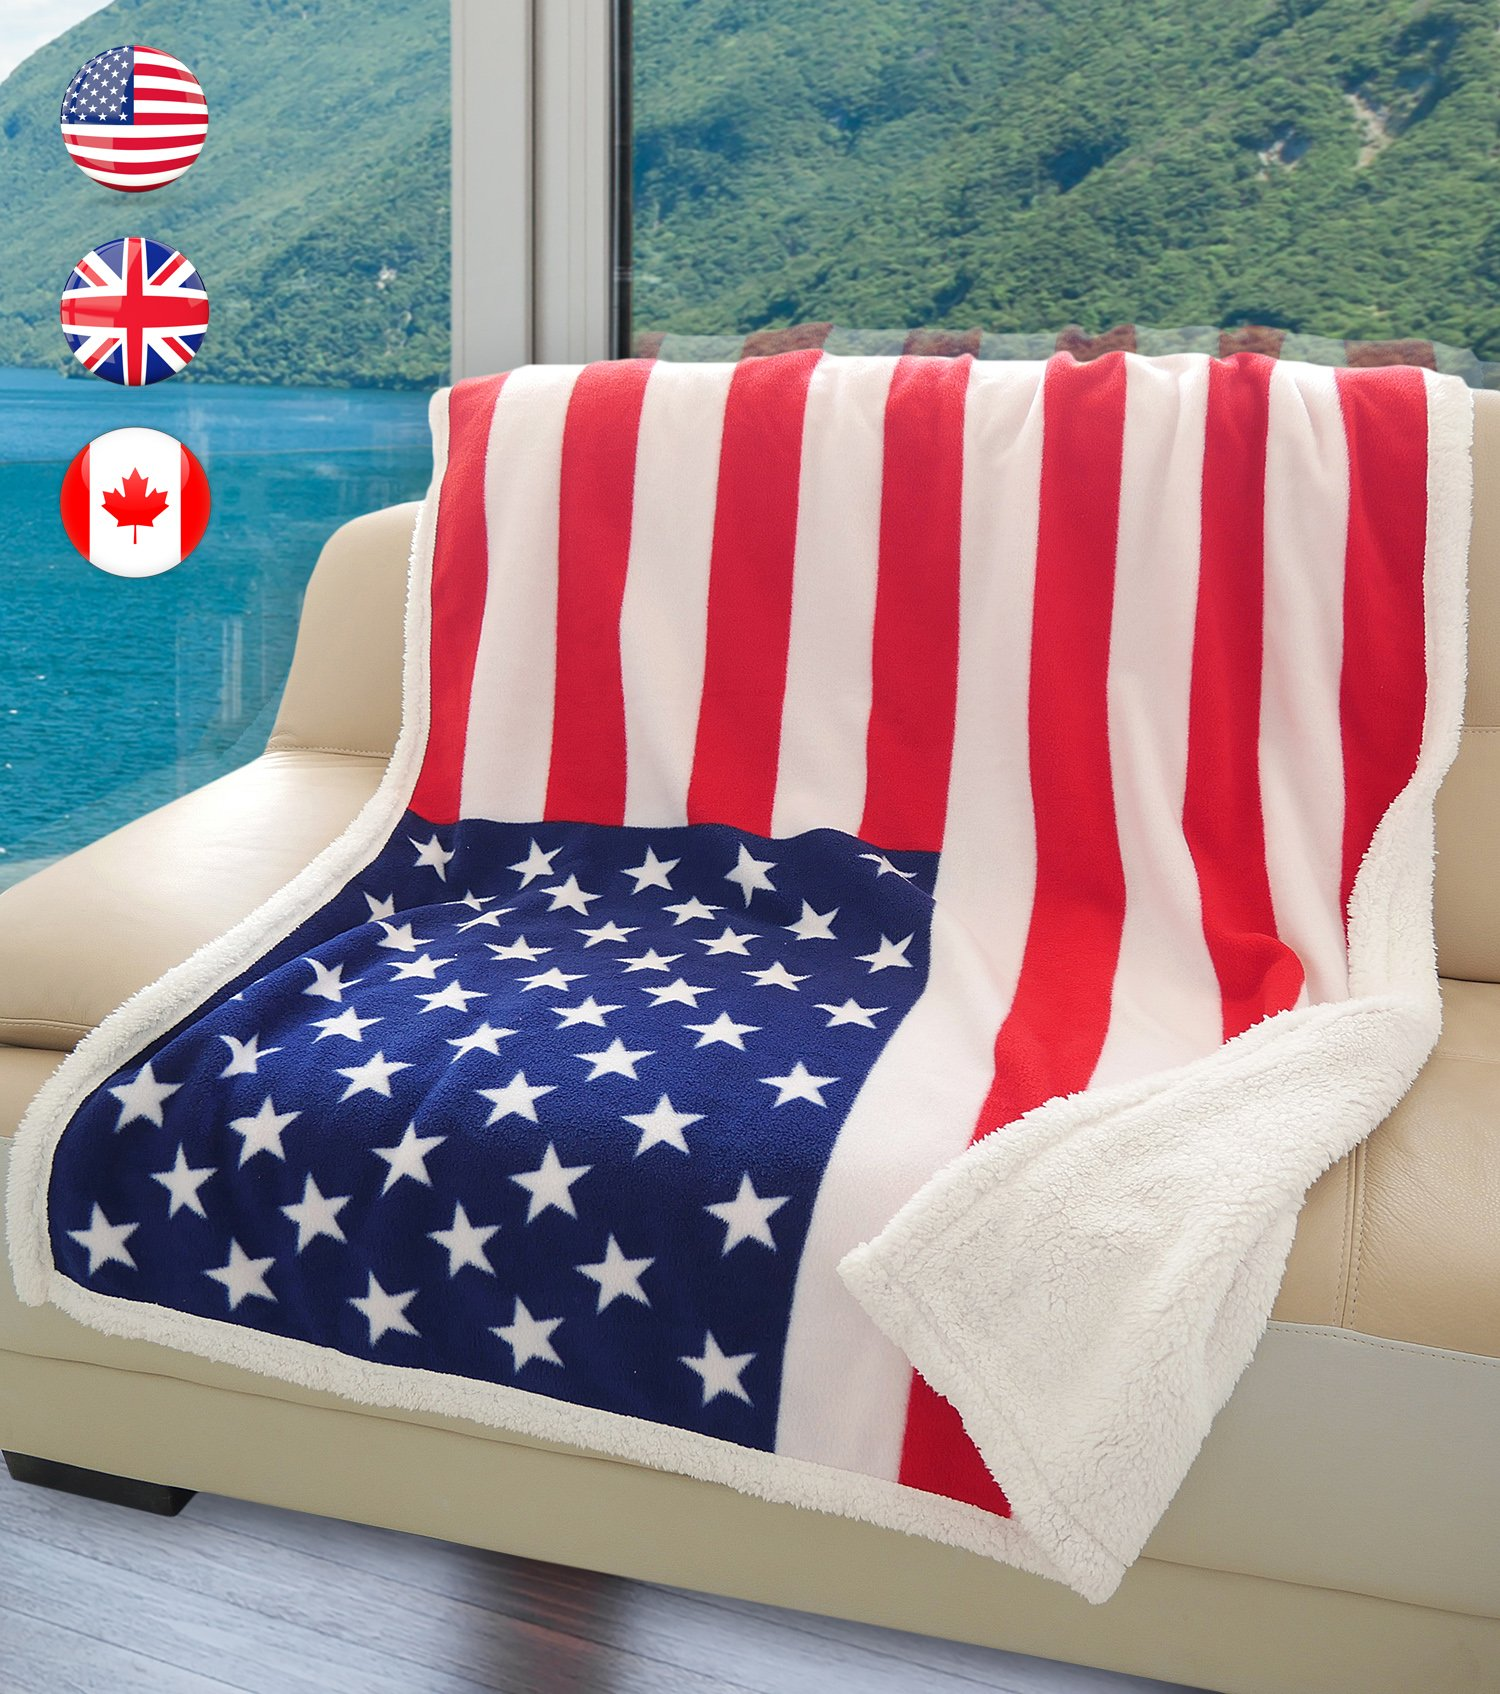 "US Flag Patriotic Sherpa Throw Blanket, Super Cozy Fleece Plush Bed Throw TV Blankets Reversible for Bed or Couch 50"" x 60"" 